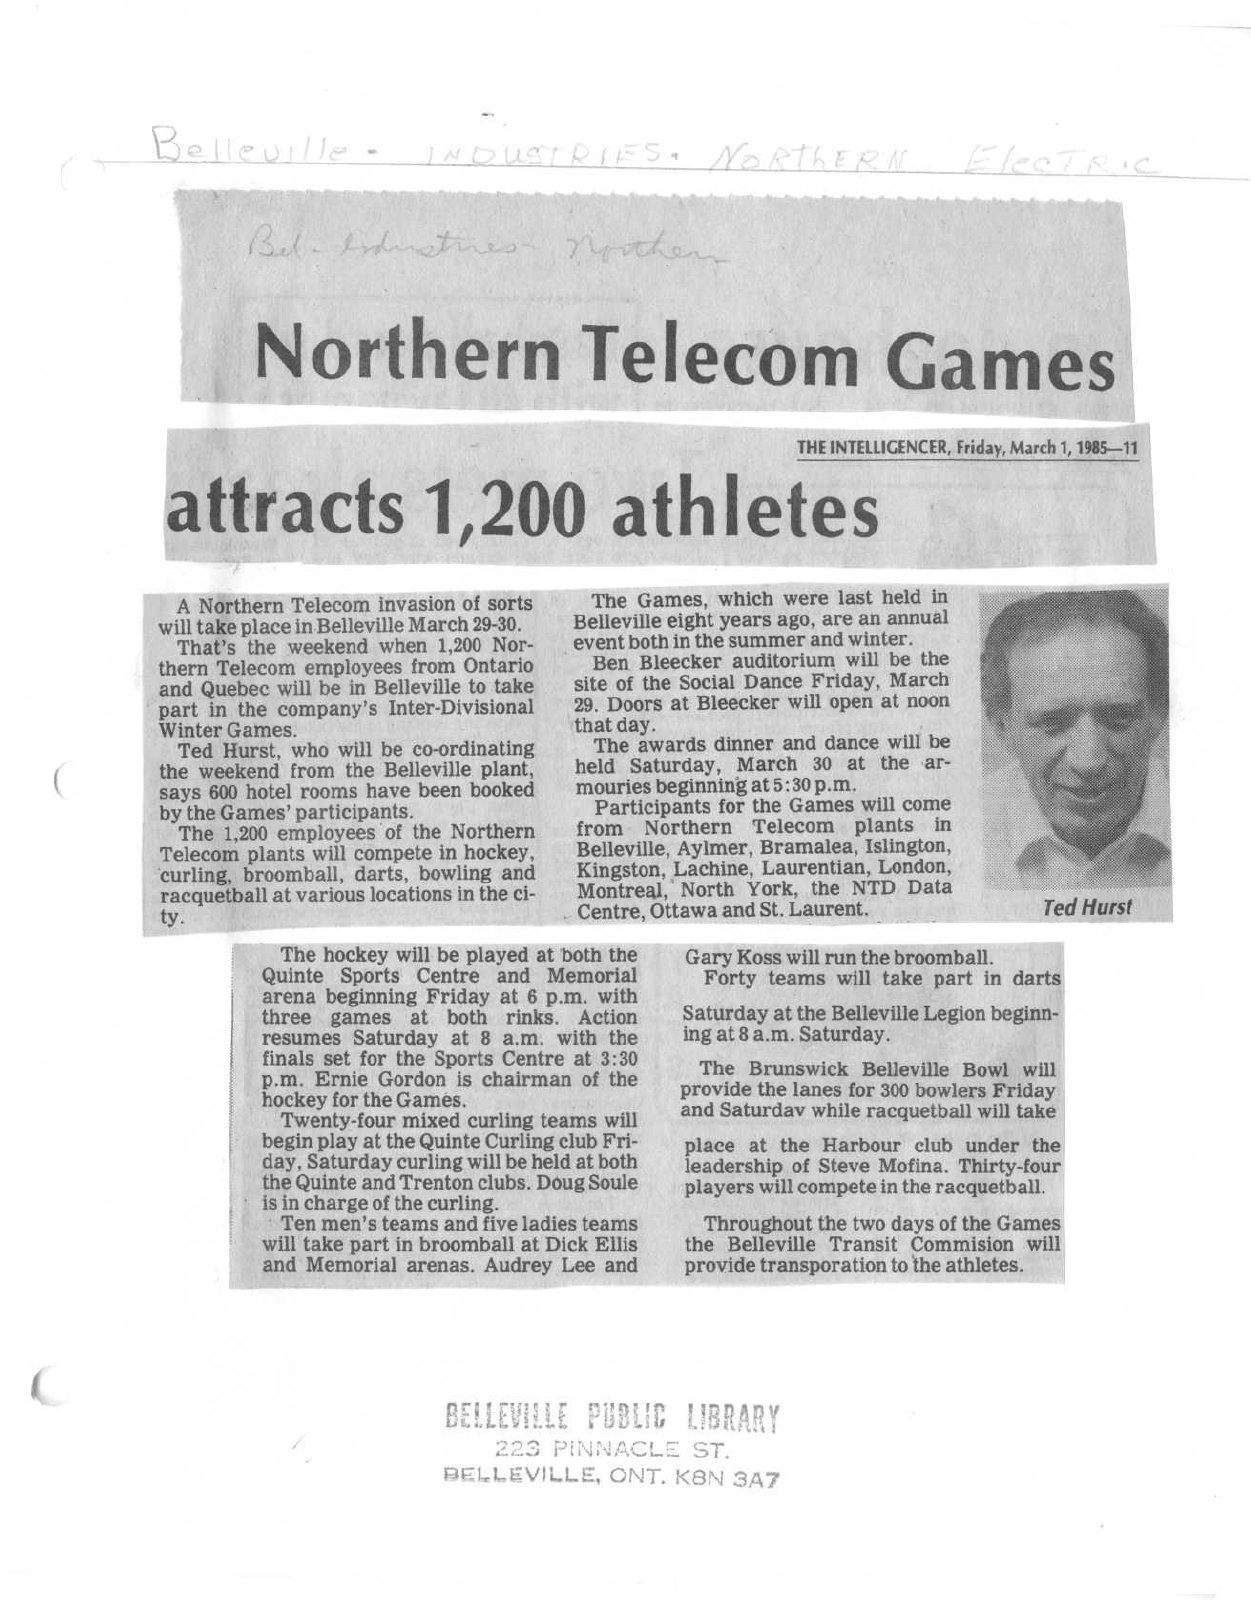 Northern Telecom Games attracts 1,200 athletes